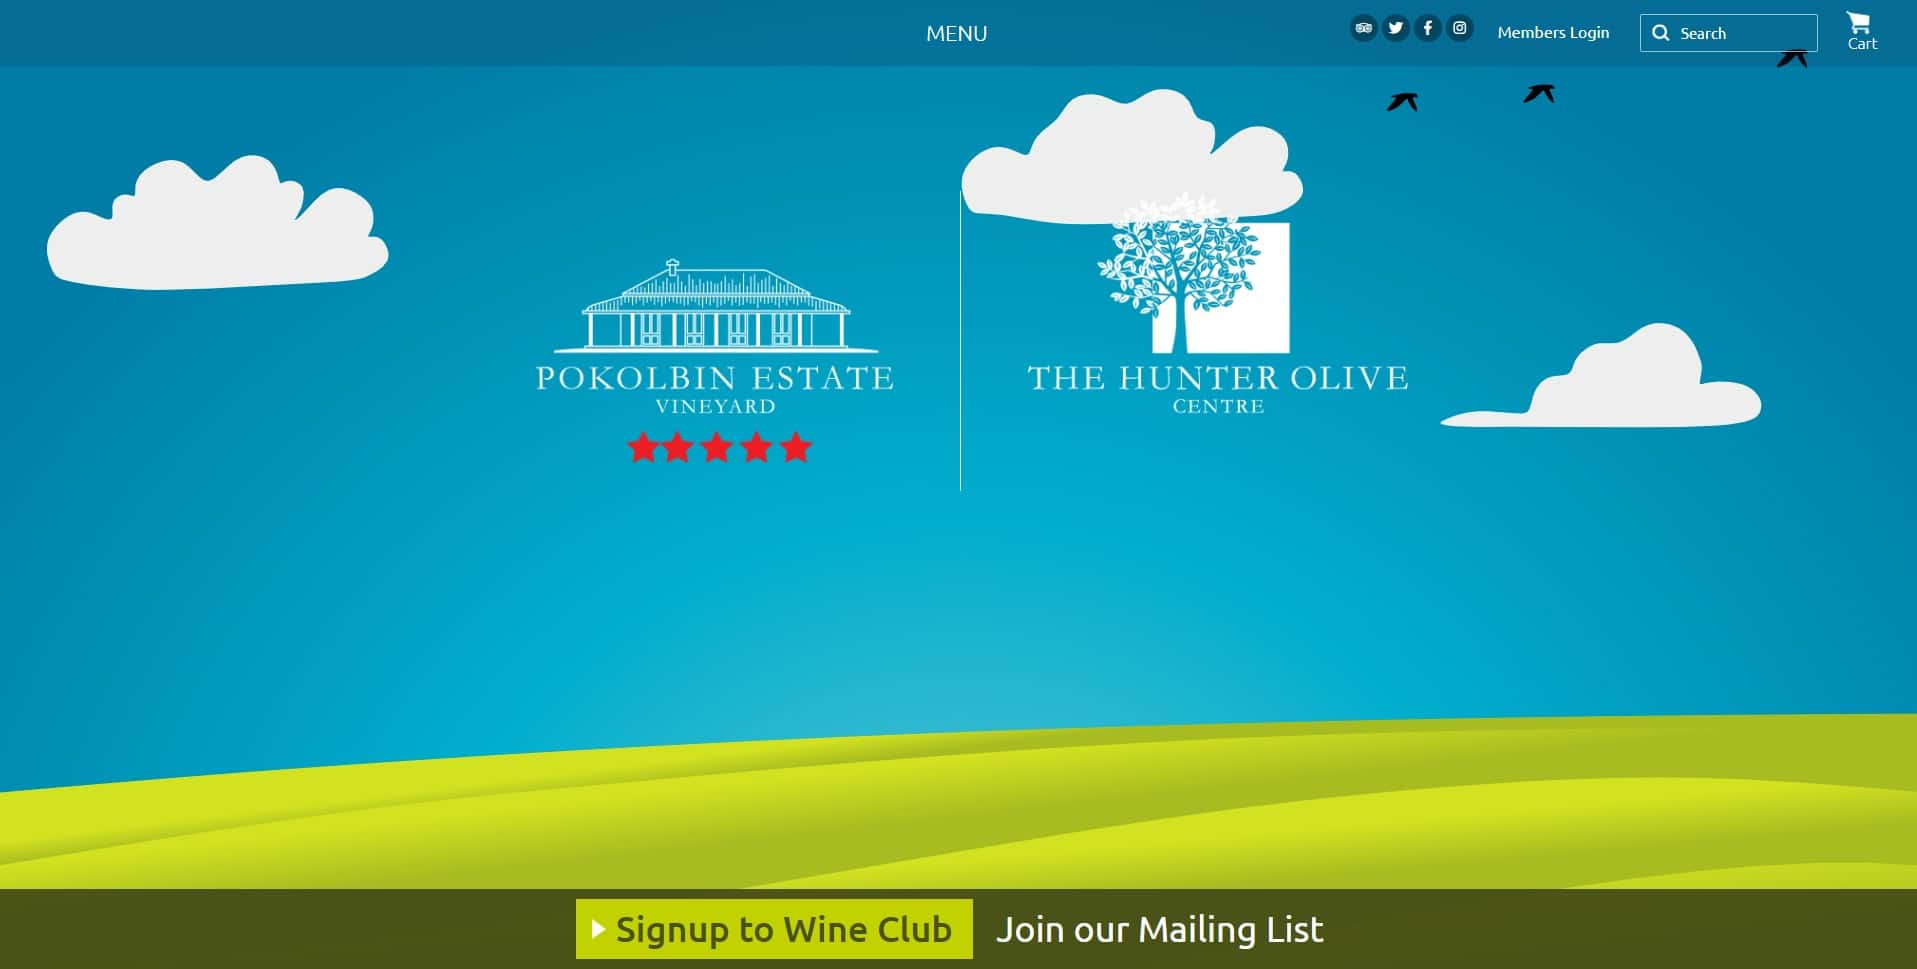 Pokolbin Estate Vineyard Website Design & SEO Northern Rivers NSW - JezNorthWeb